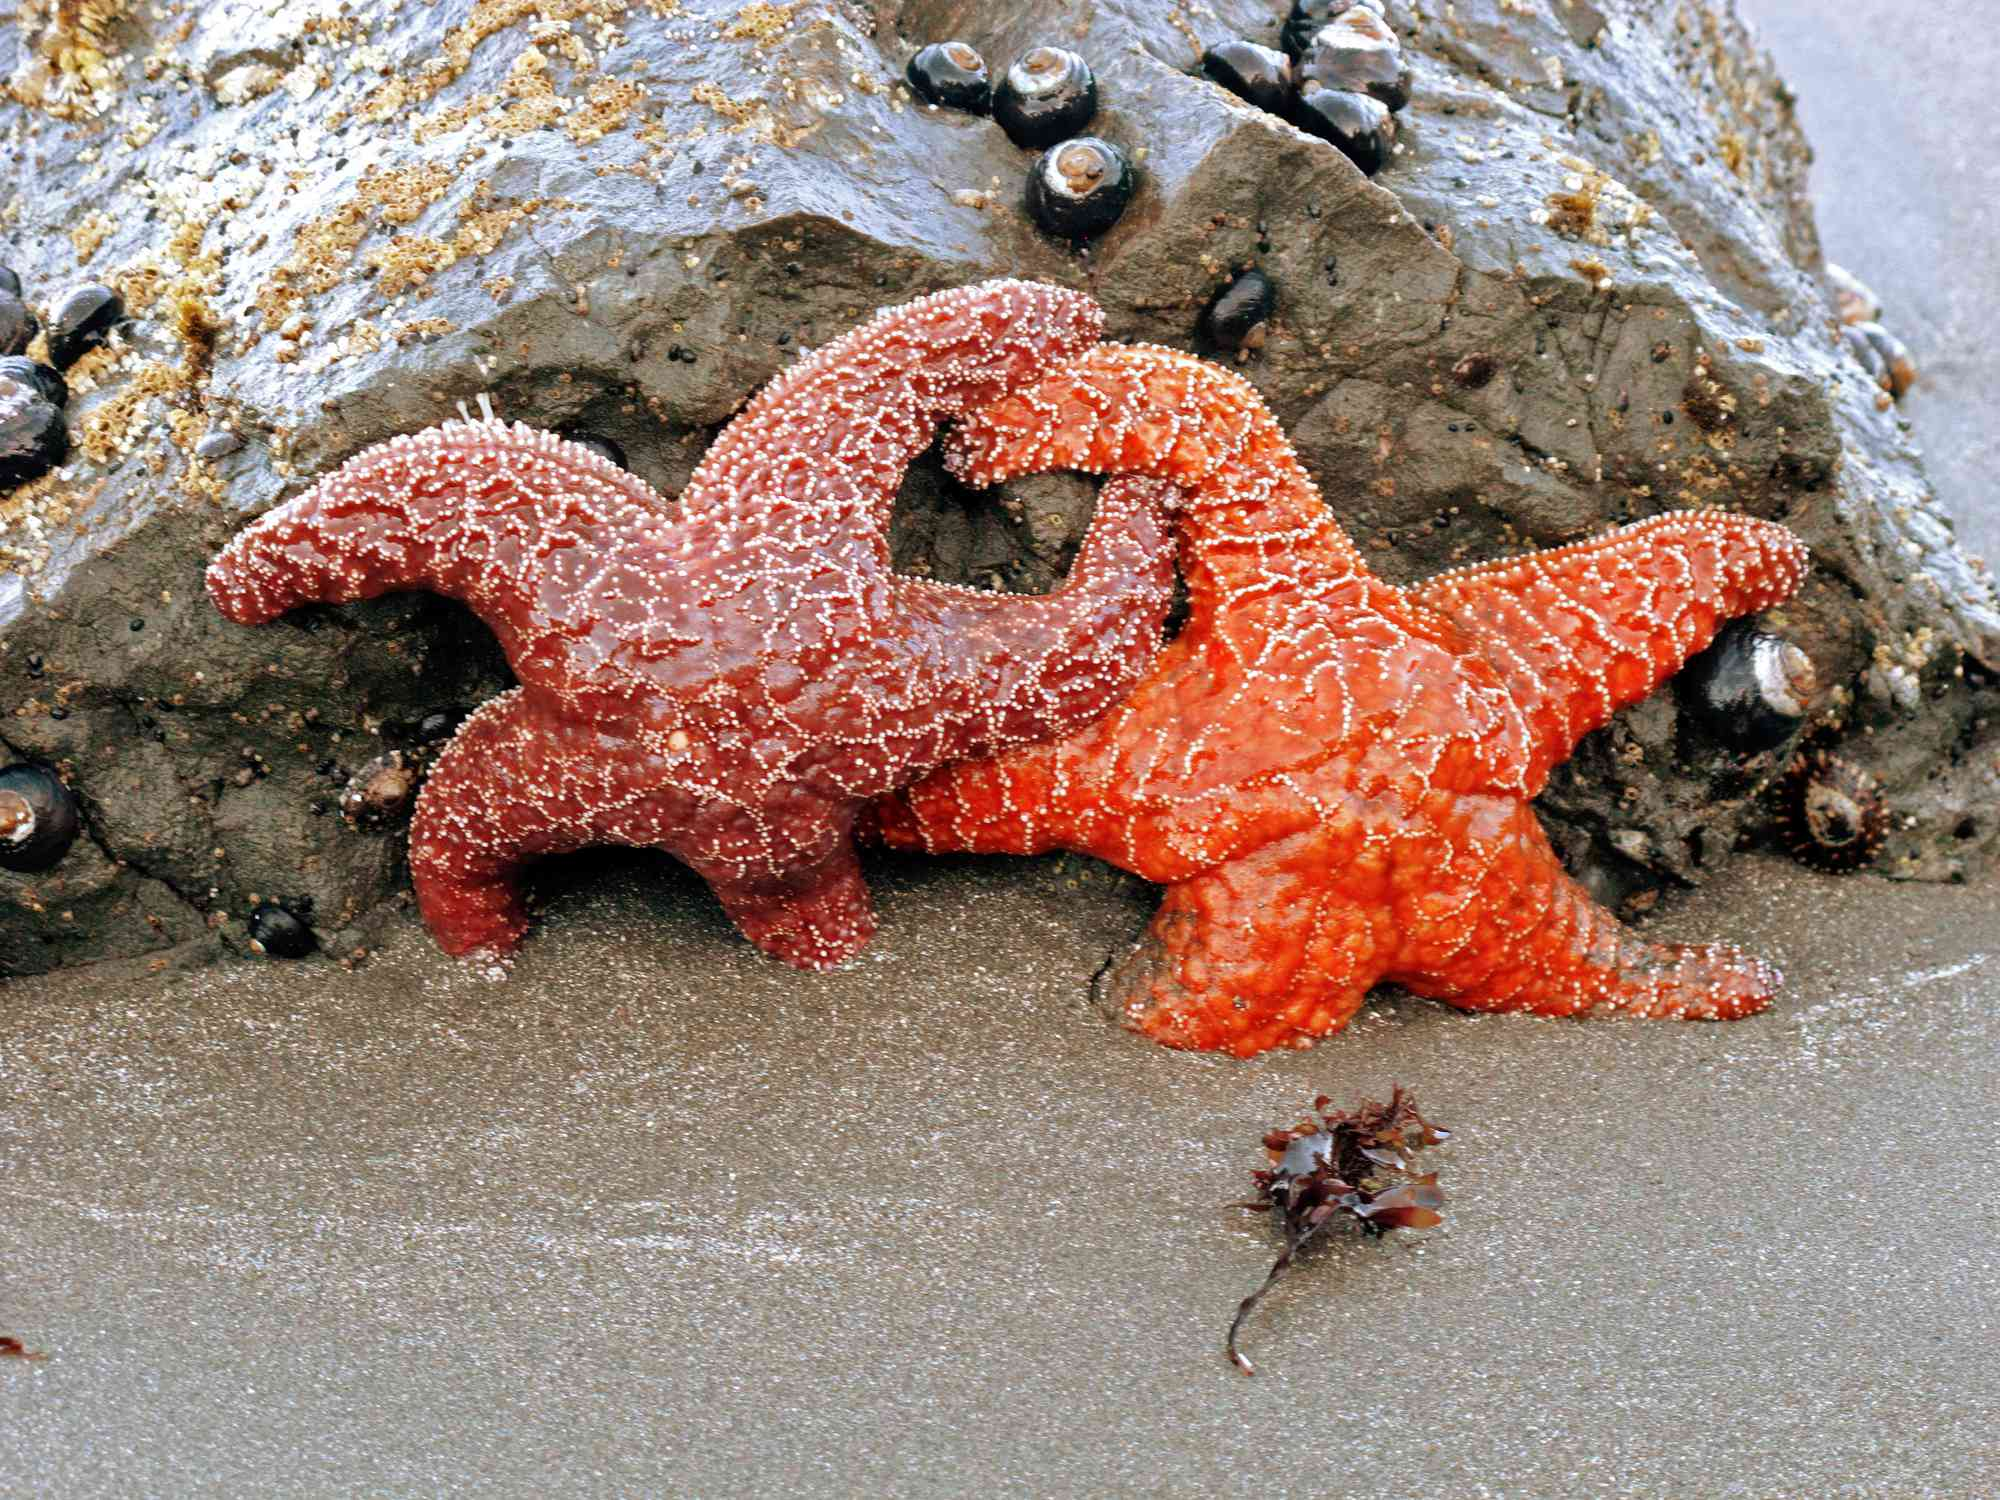 Starfish reproduce asexually through fission